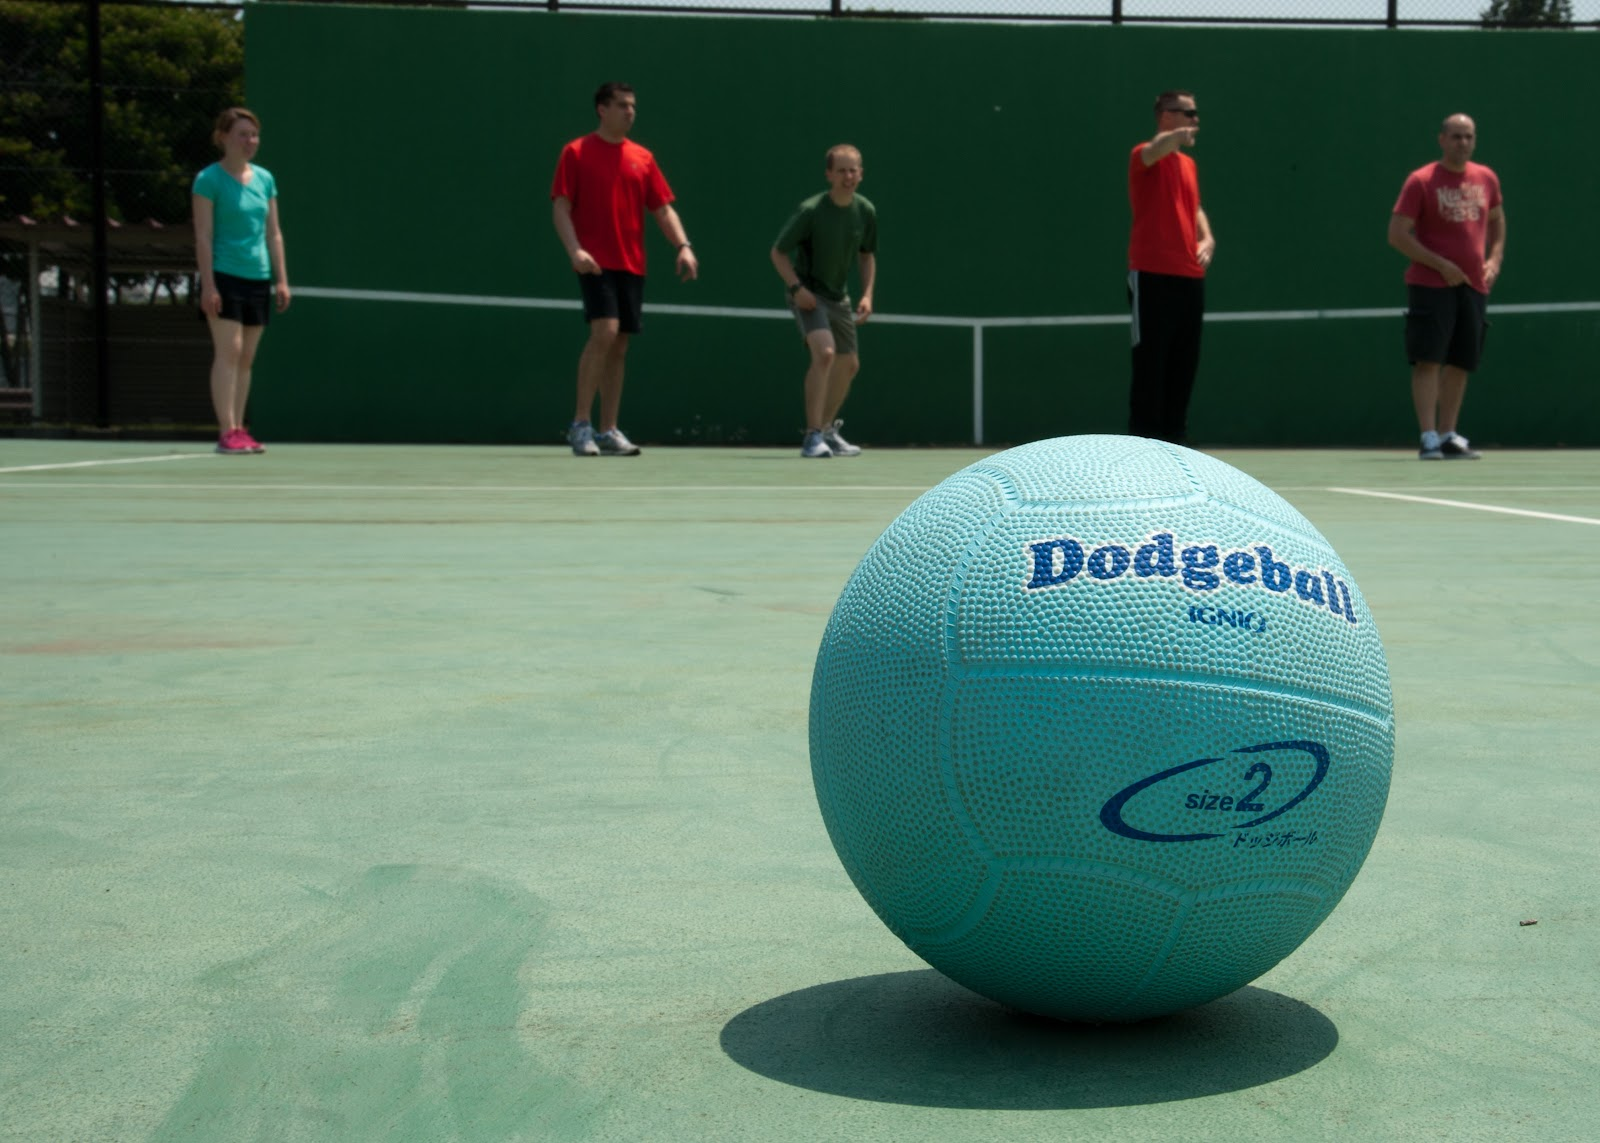 A Dodgeball on a court,